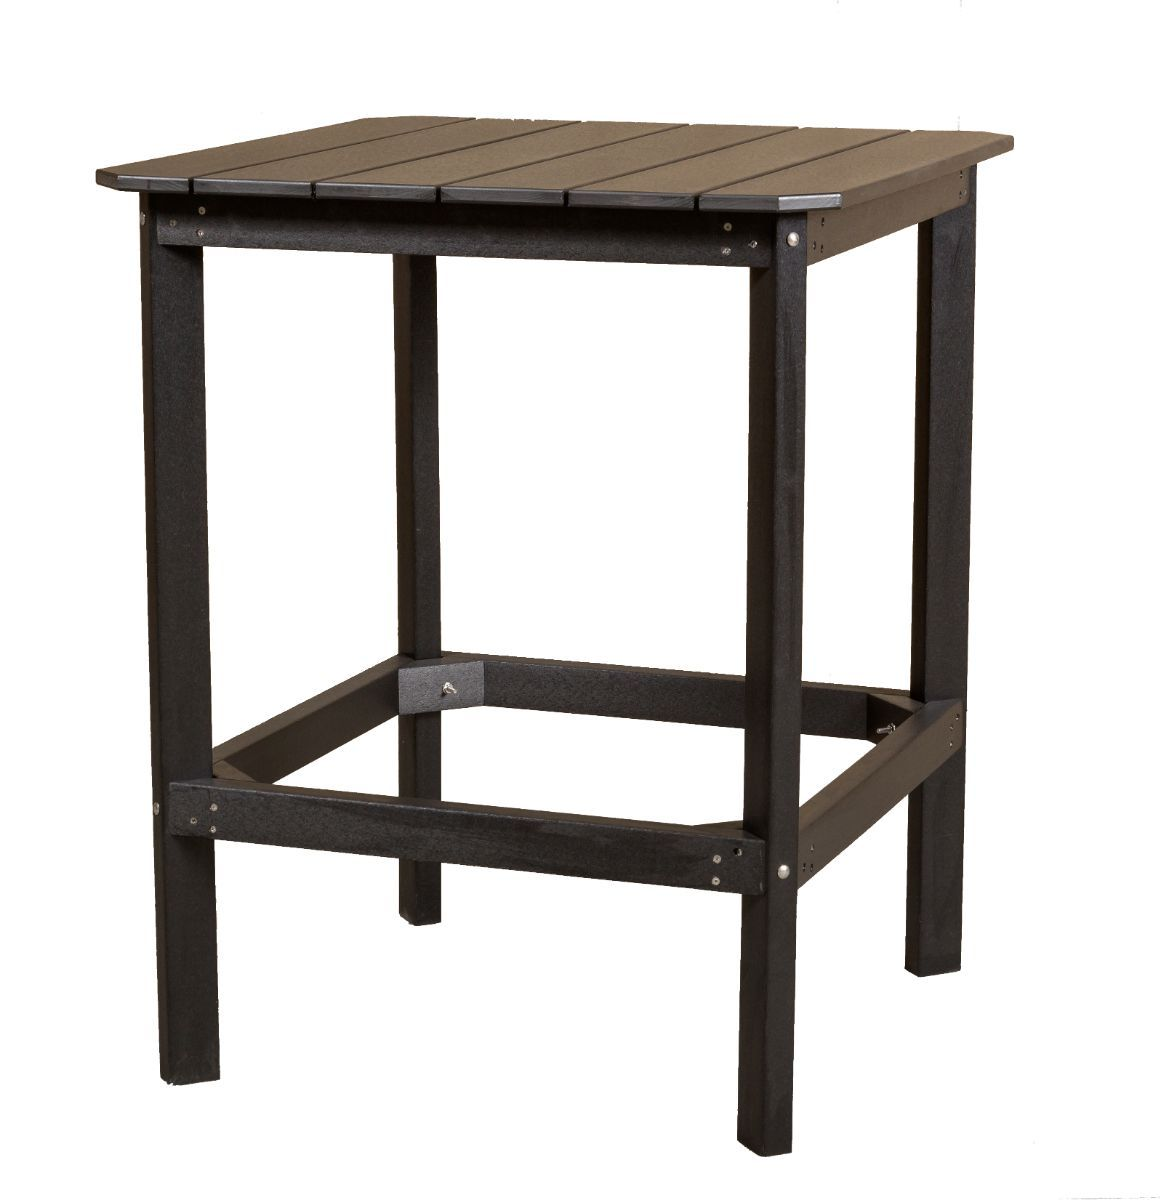 Black Panama High Outdoor Dining Table